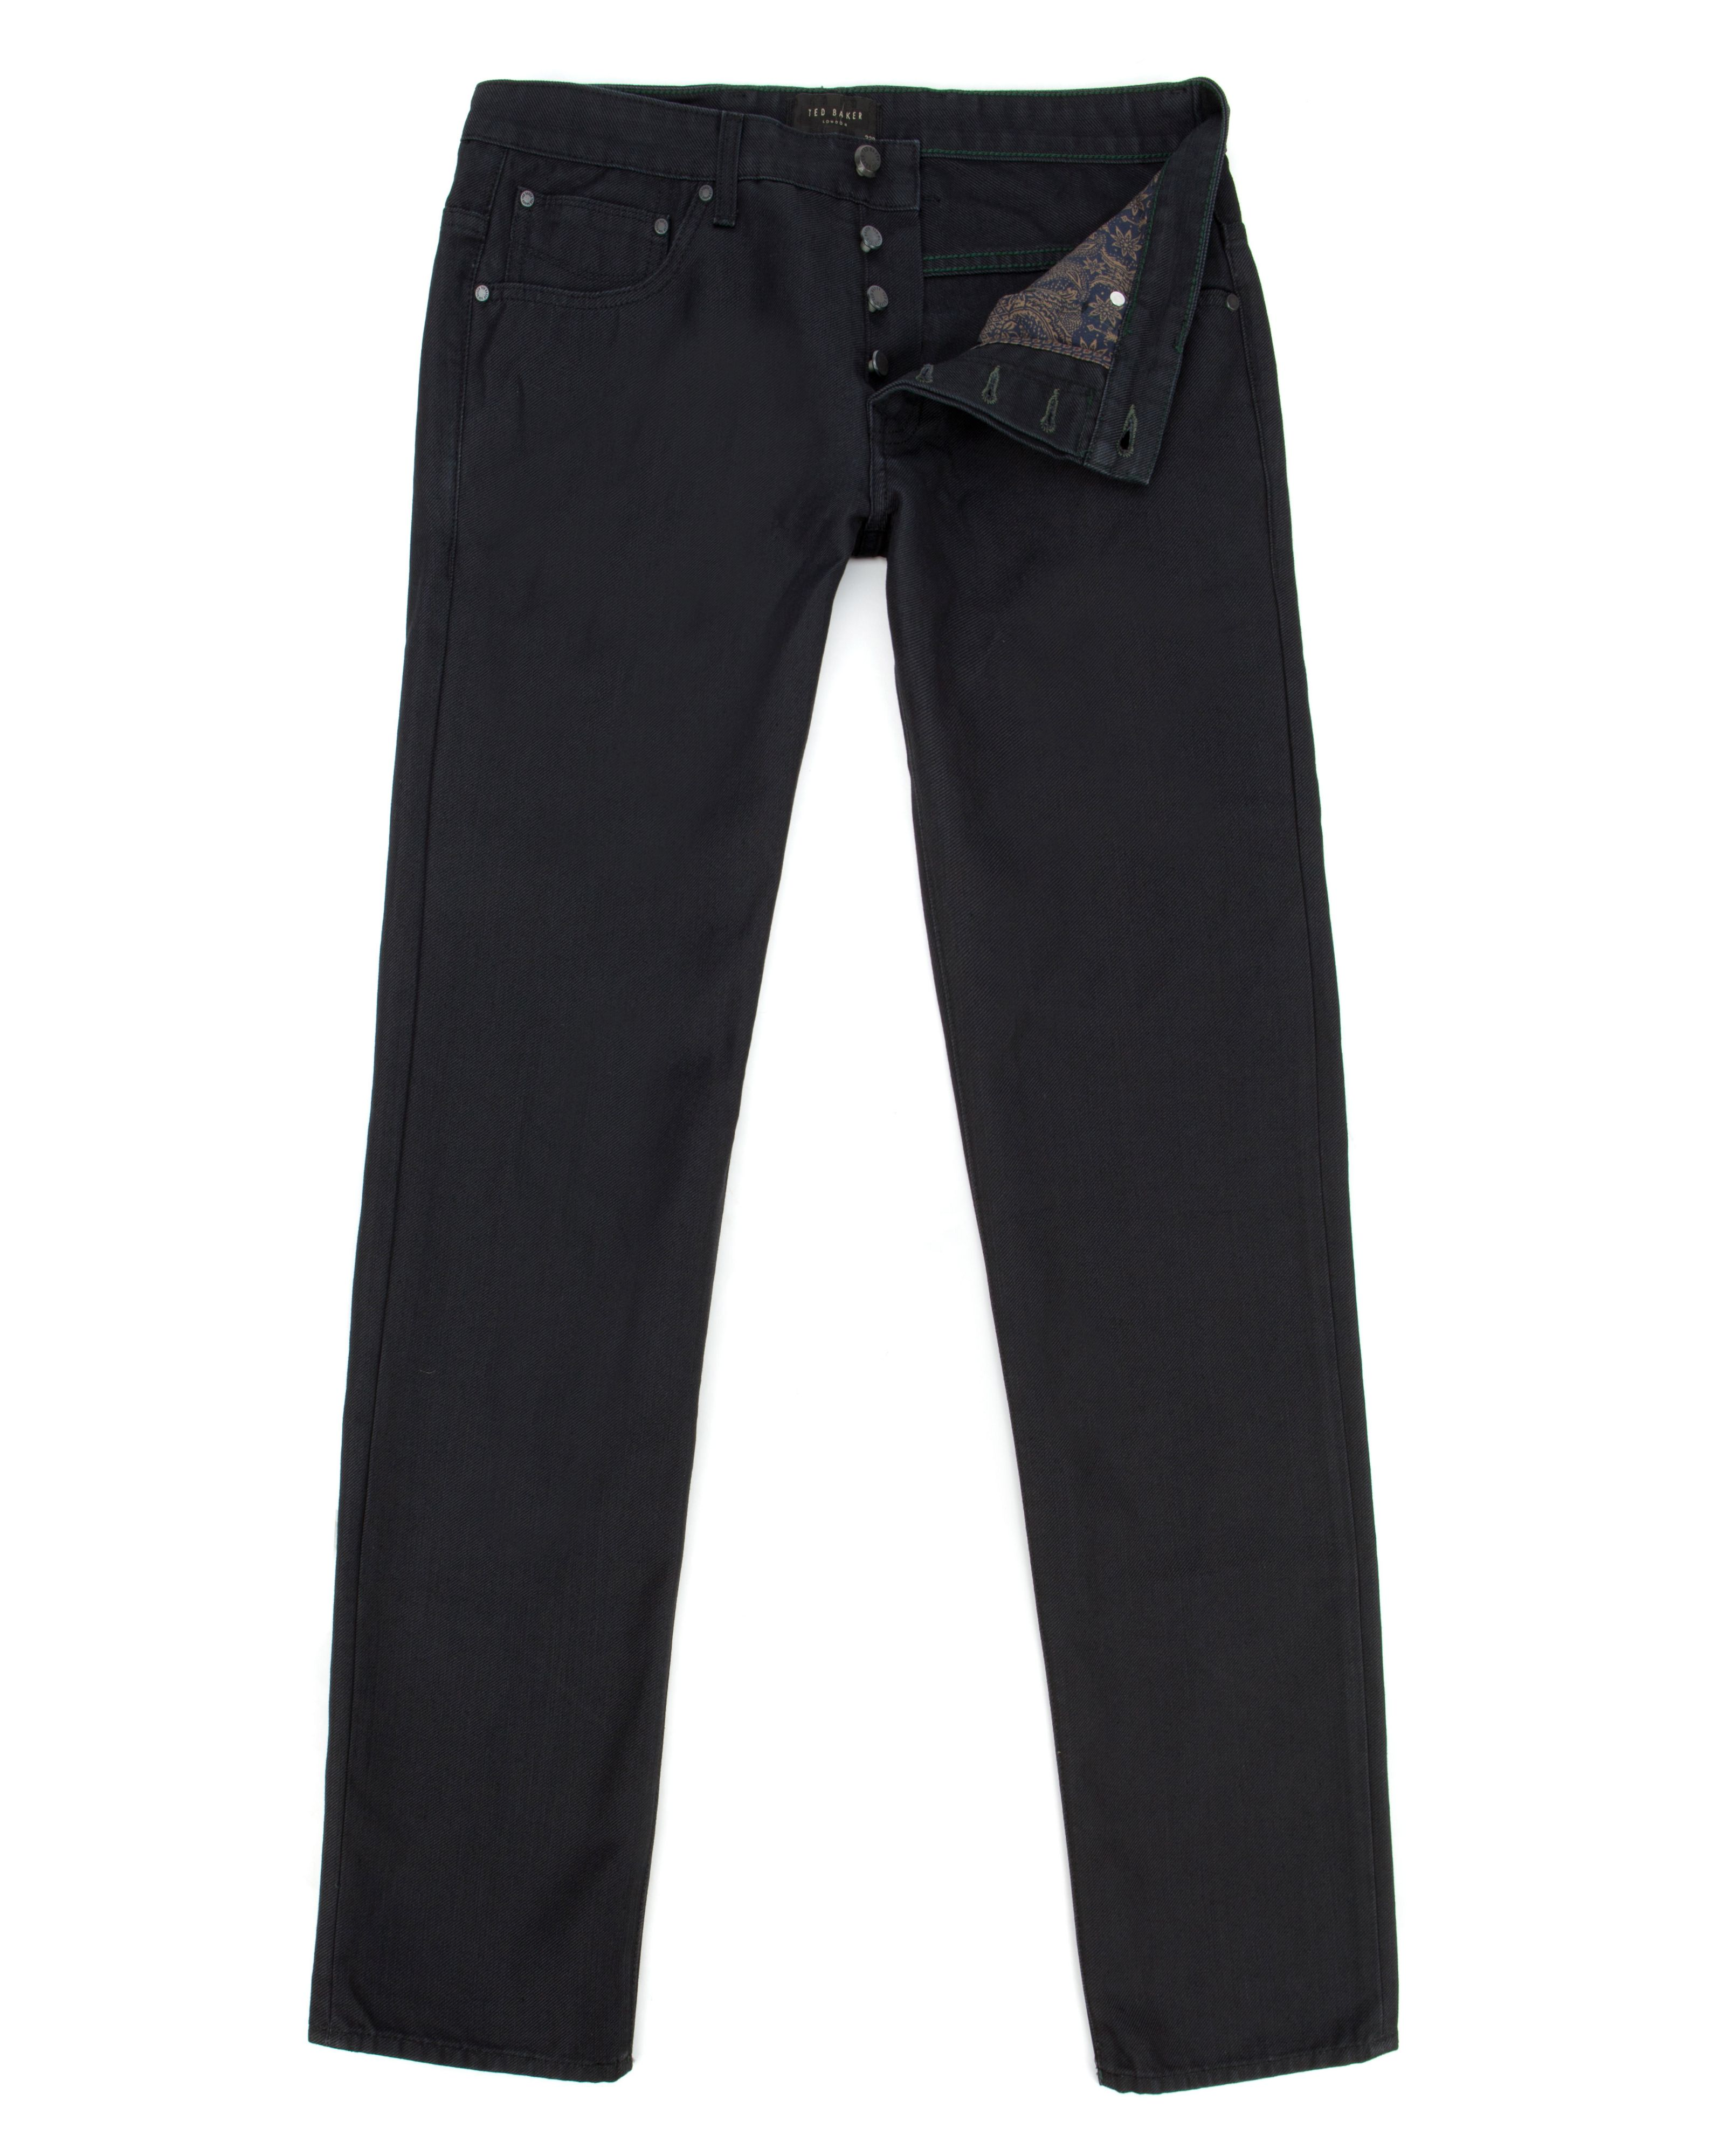 Sotraki slim fit dark rinse denim